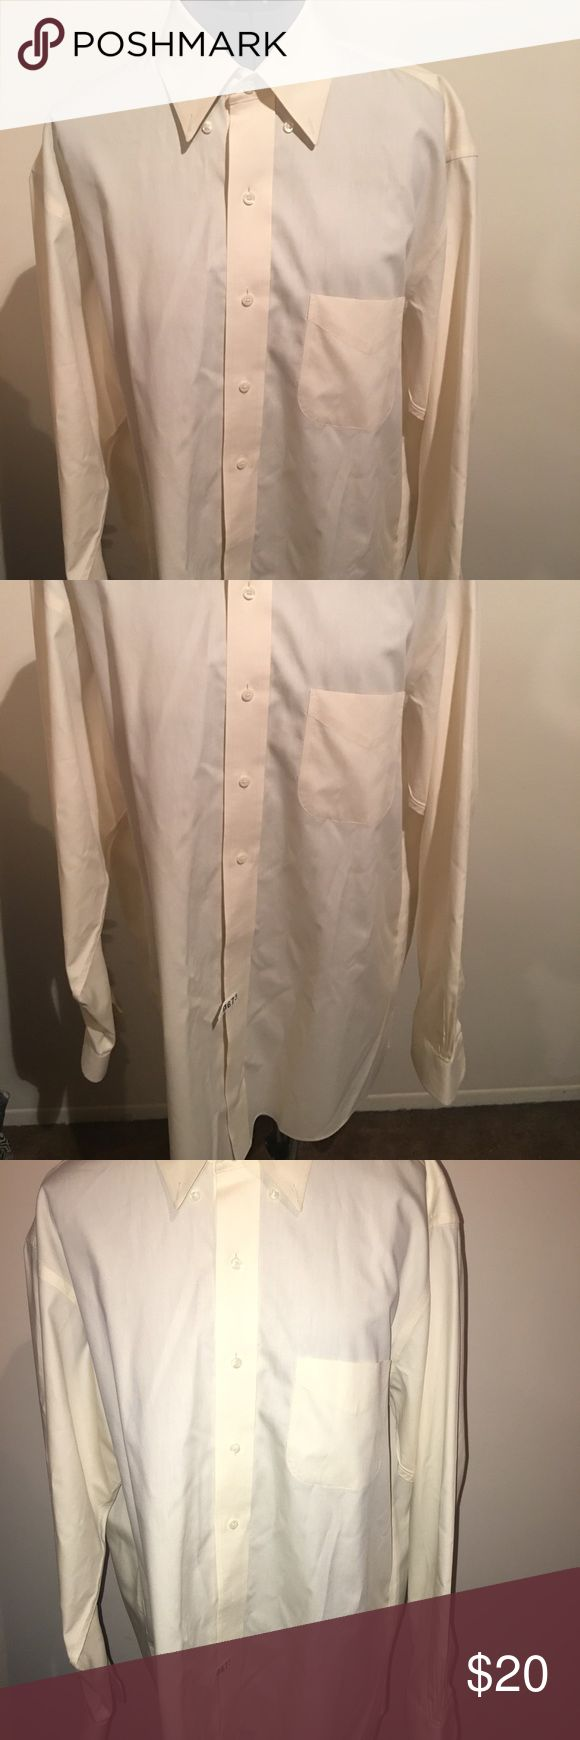 Men's Brooks Brothers 346 non iron shirt 16 1/2 35 Hey guys, in this listing you are purchasing a men's cream Colored Brooks Brothers 346 non iron button front long sleeve shirt. The shirt neckline is 16 1/2 -35. This shirt has been freshly dry cleaned for that crispy fresh look. It can be yours today! 😎 Brooks Brothers 346 Shirts Casual Button Down Shirts